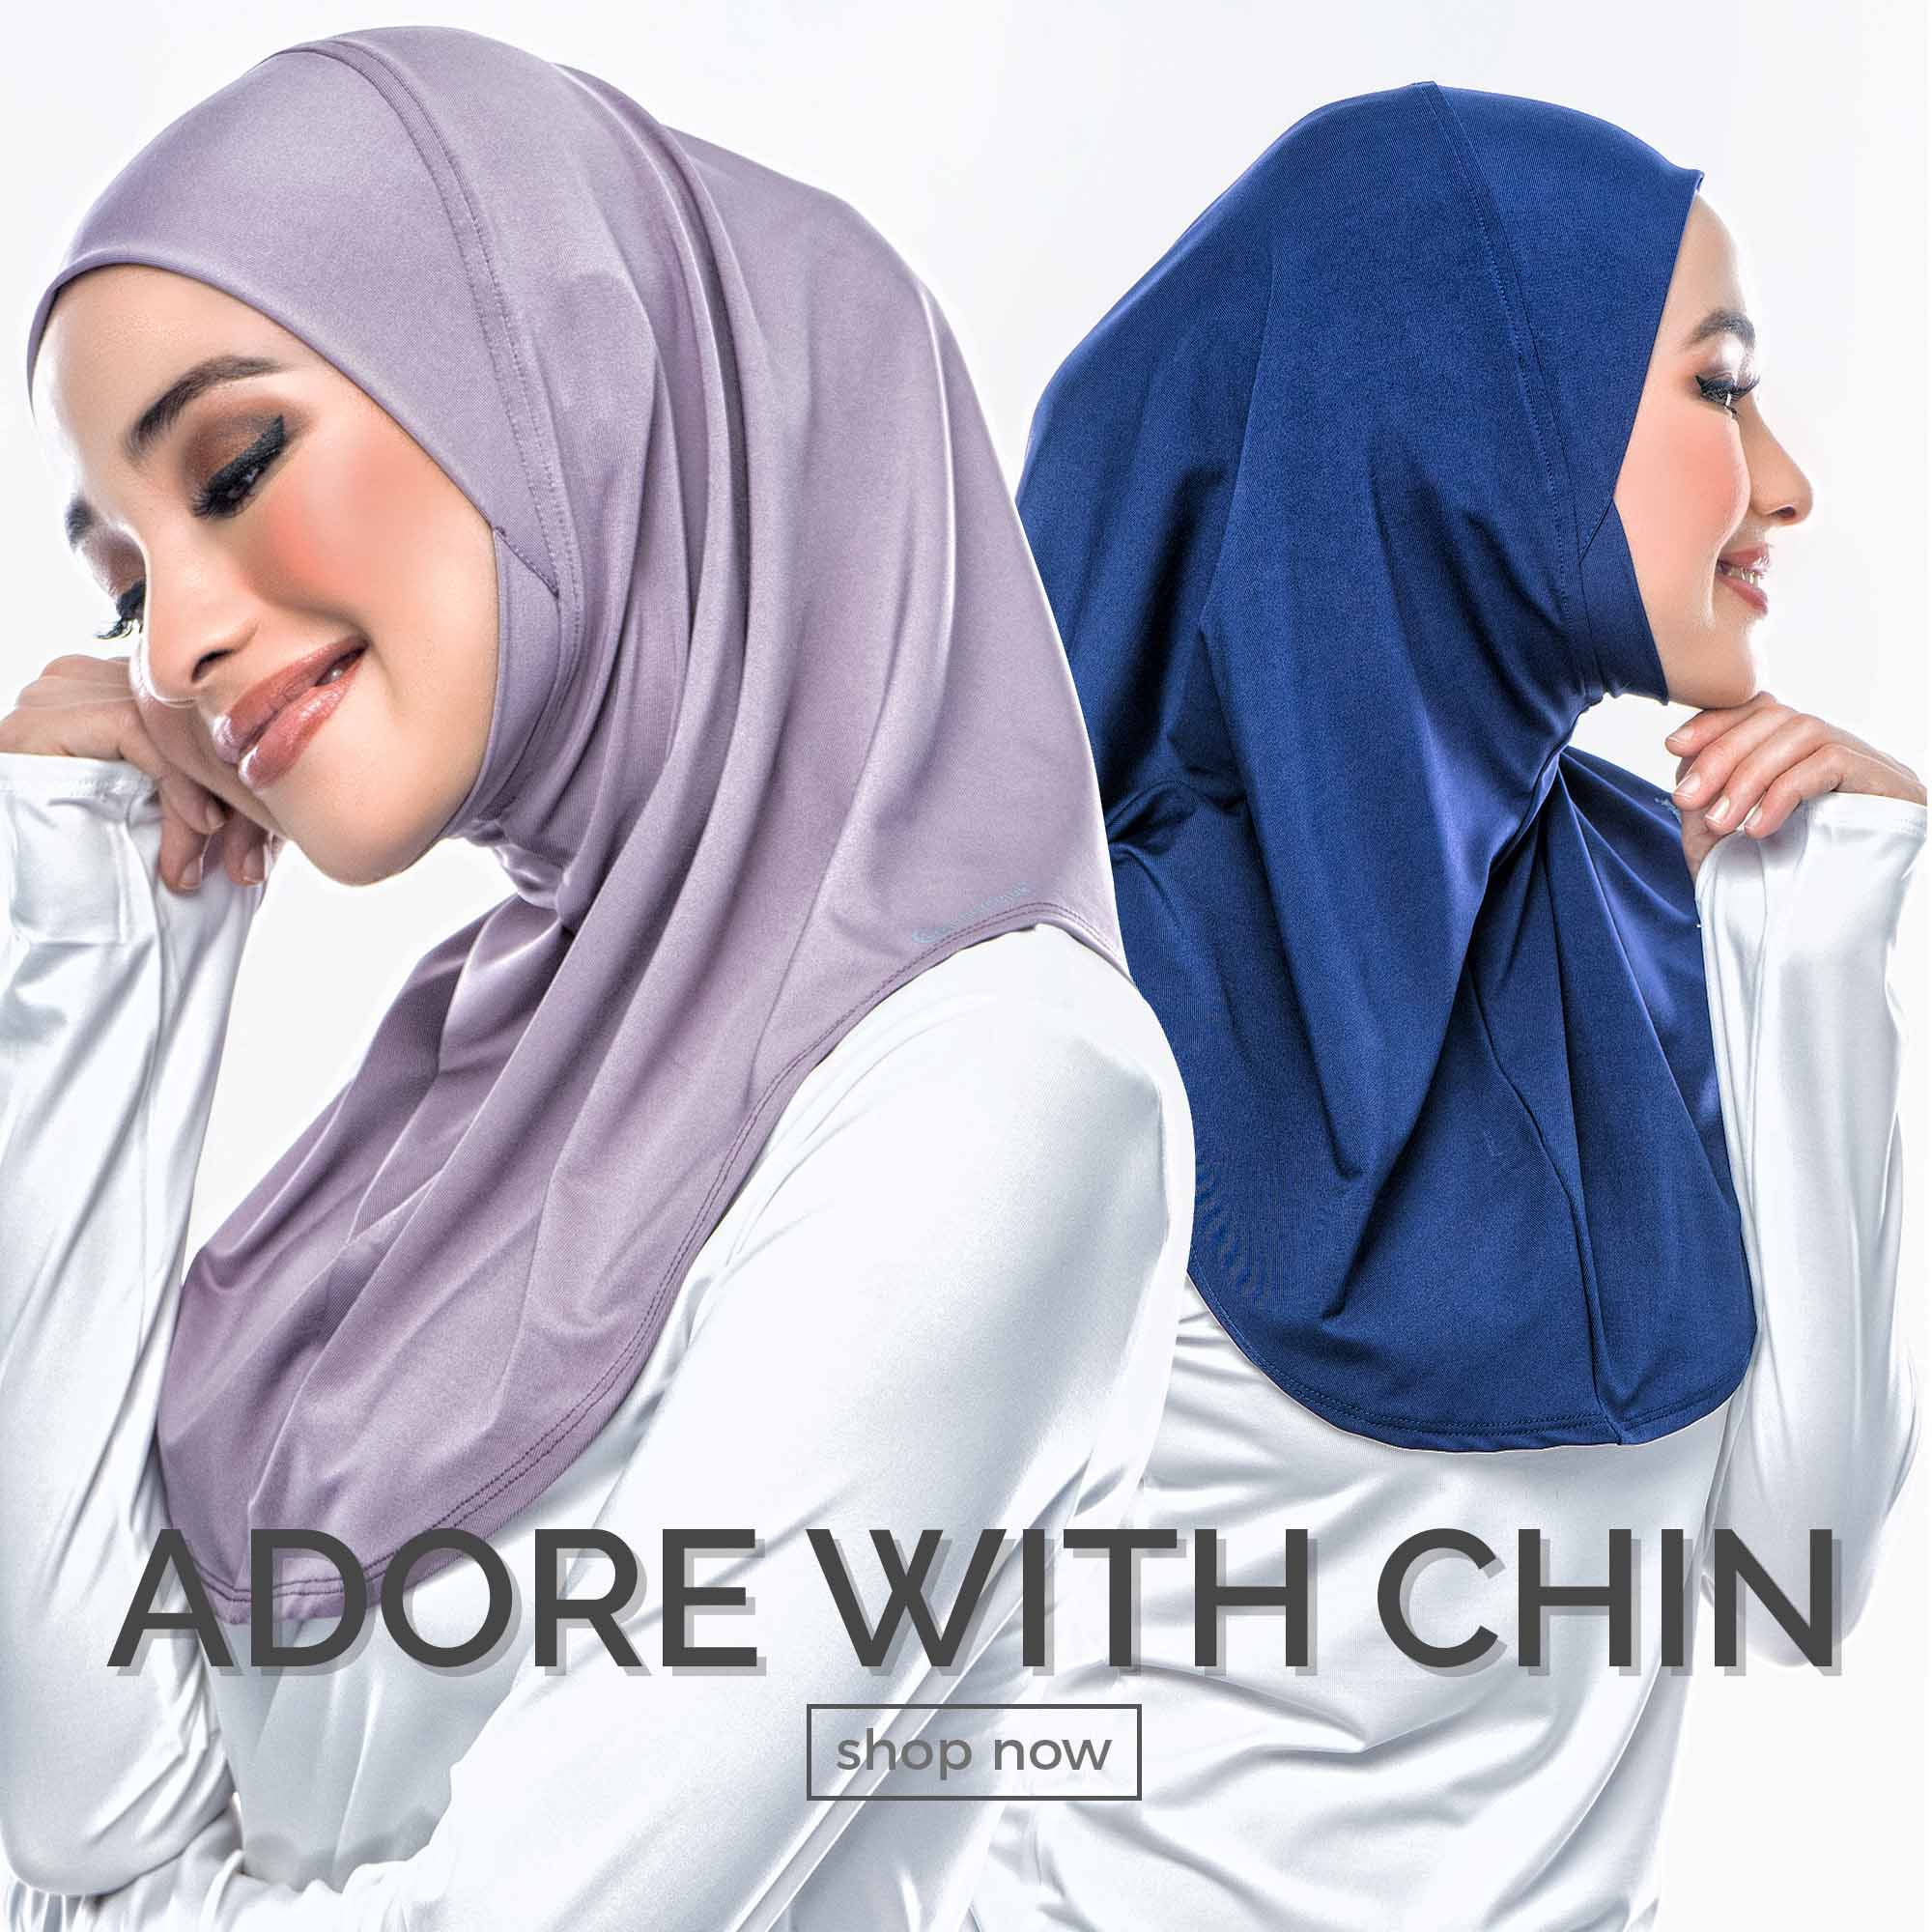 adore with chin.jpg